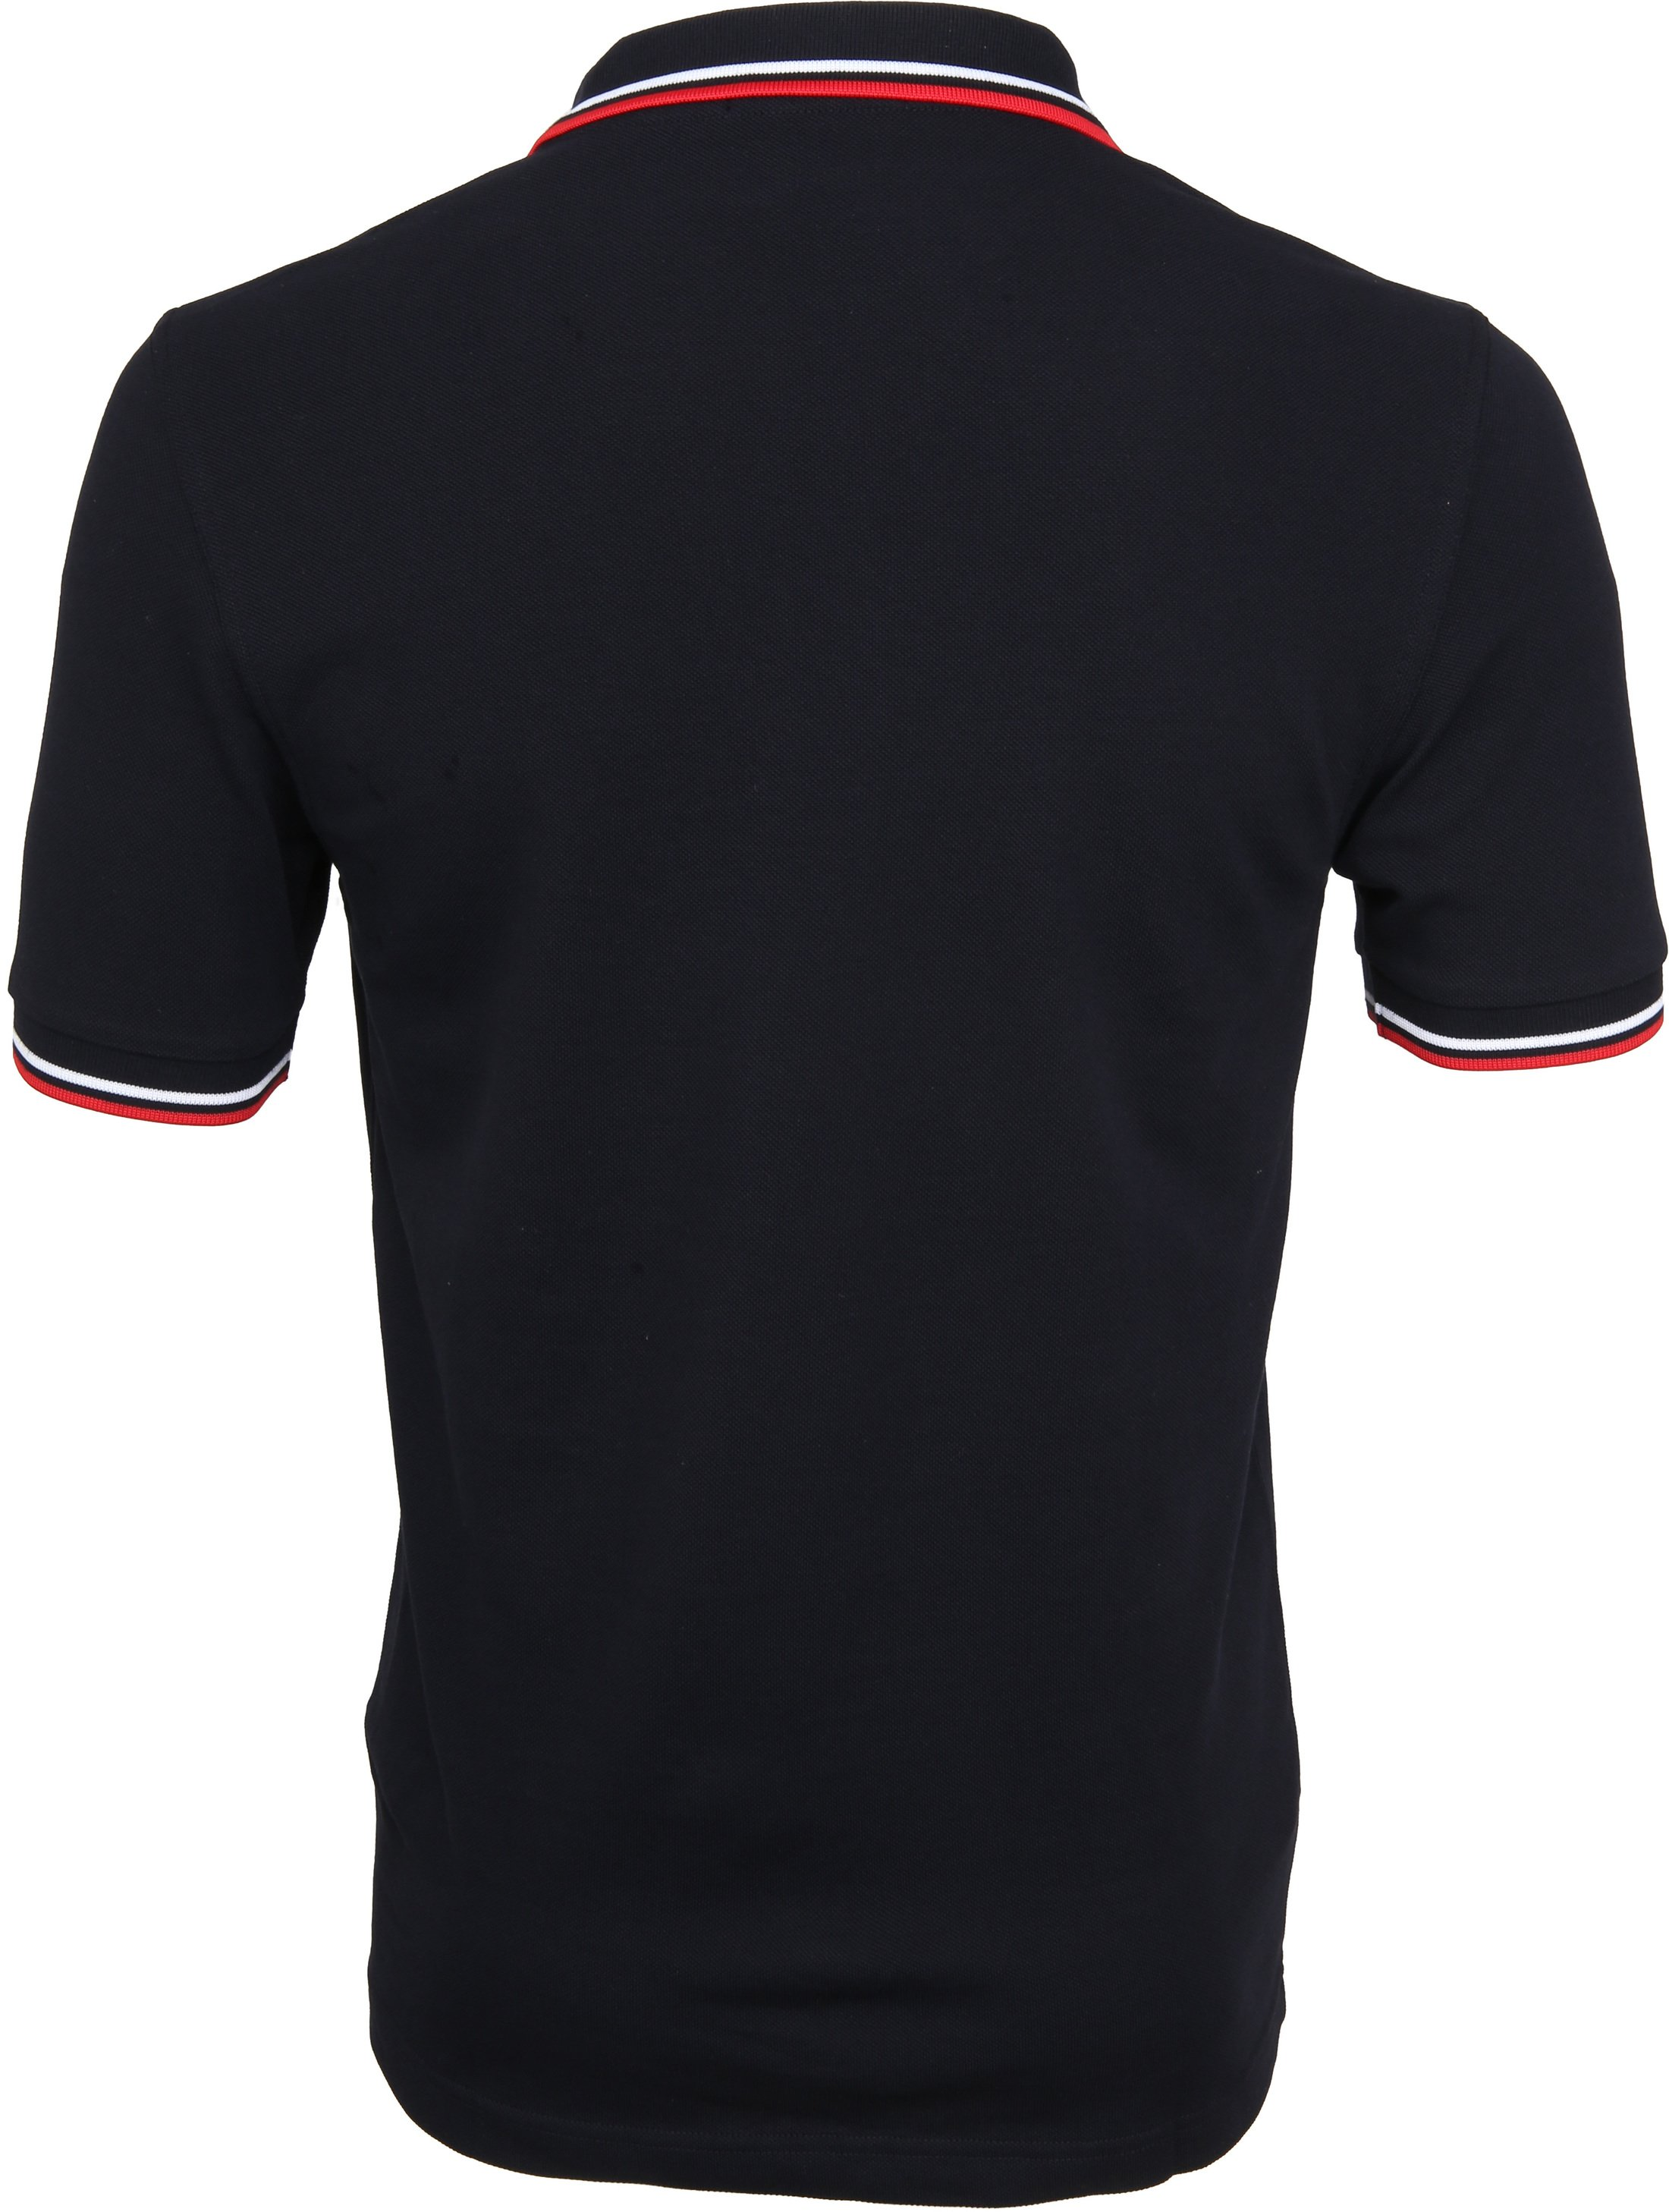 Fred Perry Polo Navy White Red foto 3